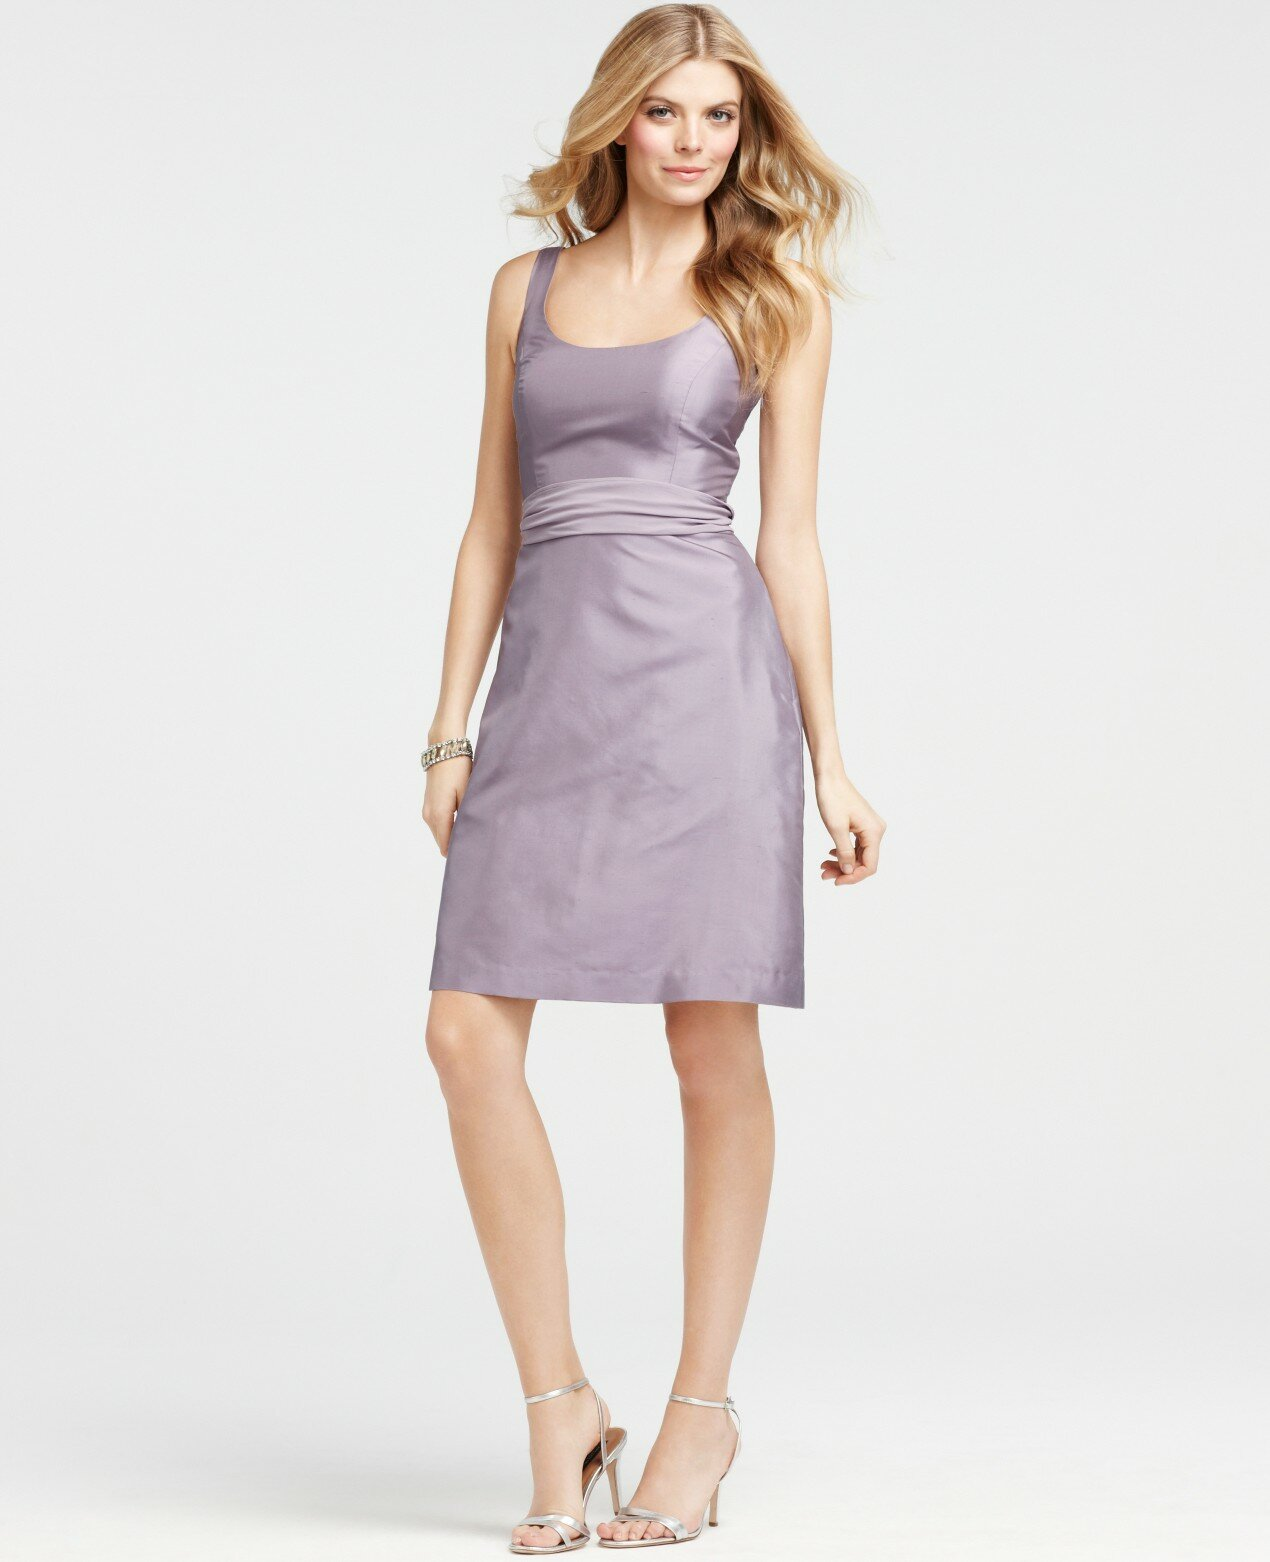 Ann taylor wedding bridesmaid dresses pictures ideas guide to ann taylor wedding bridesmaid dresses photo 4 ombrellifo Images